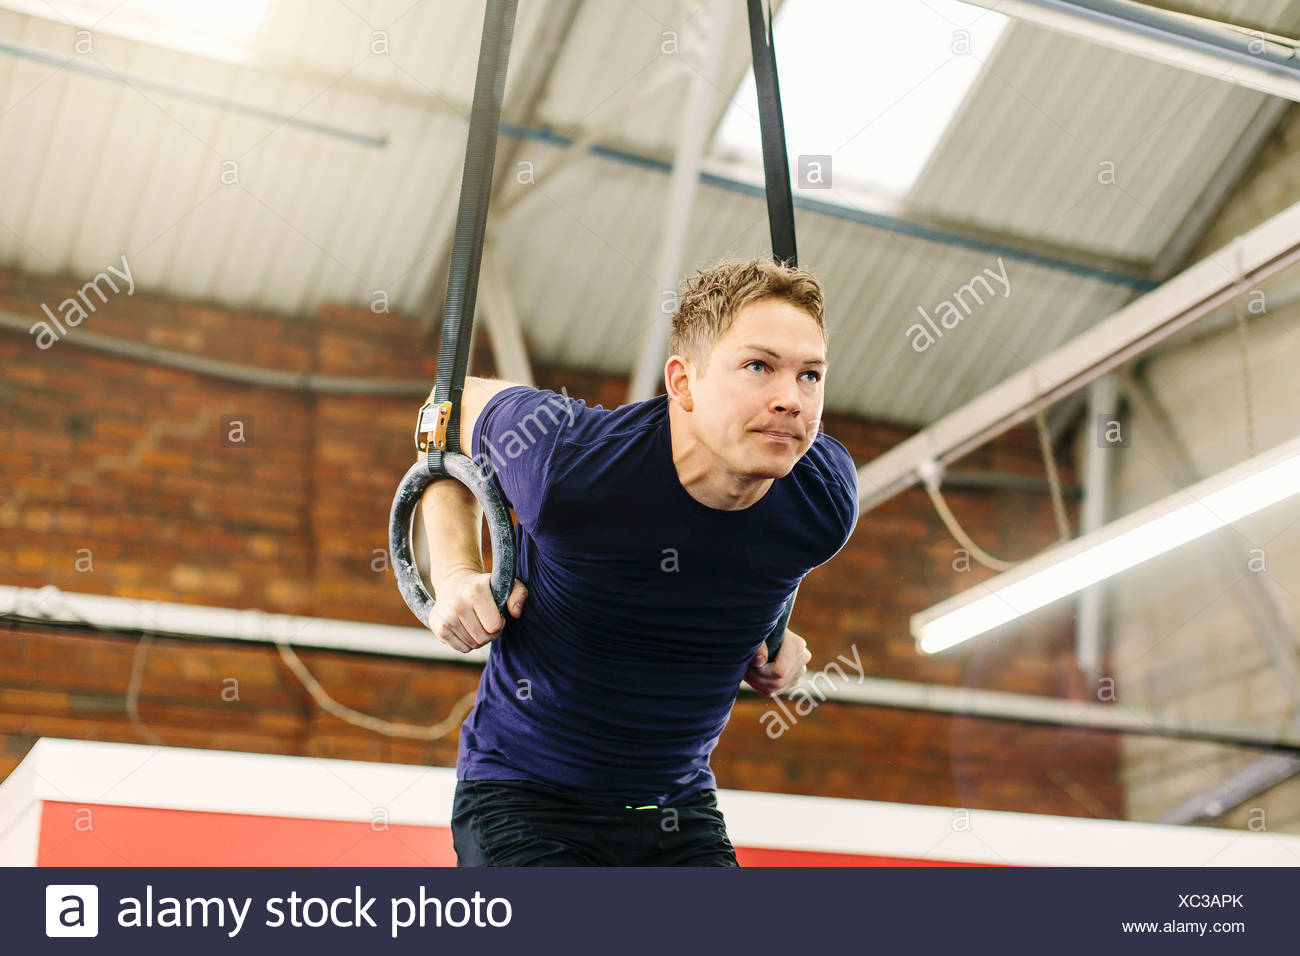 Man pulling suspended rings in gym - Stock Image